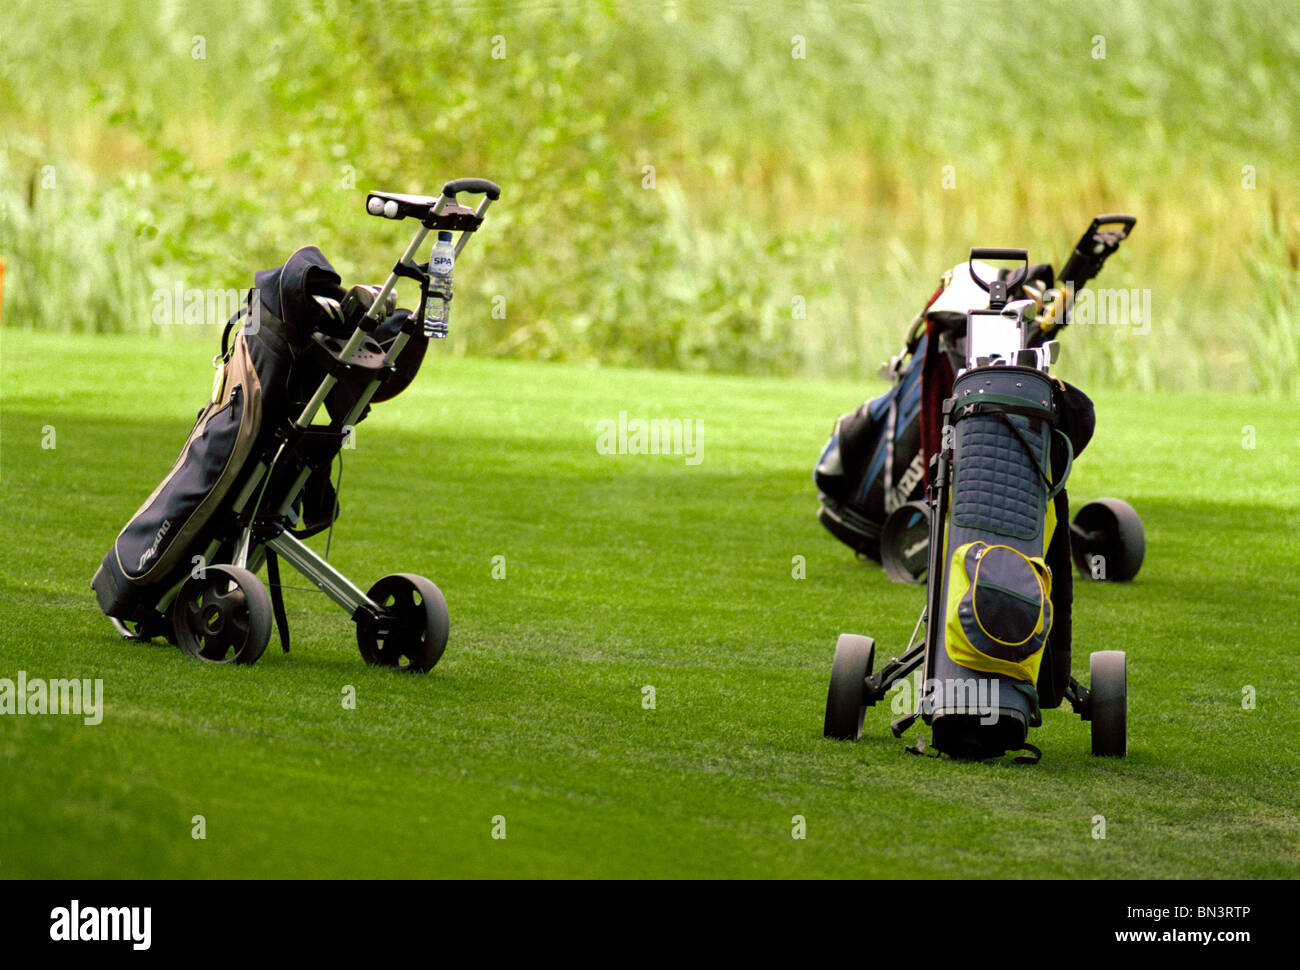 Golf bags on golf course - Stock Image